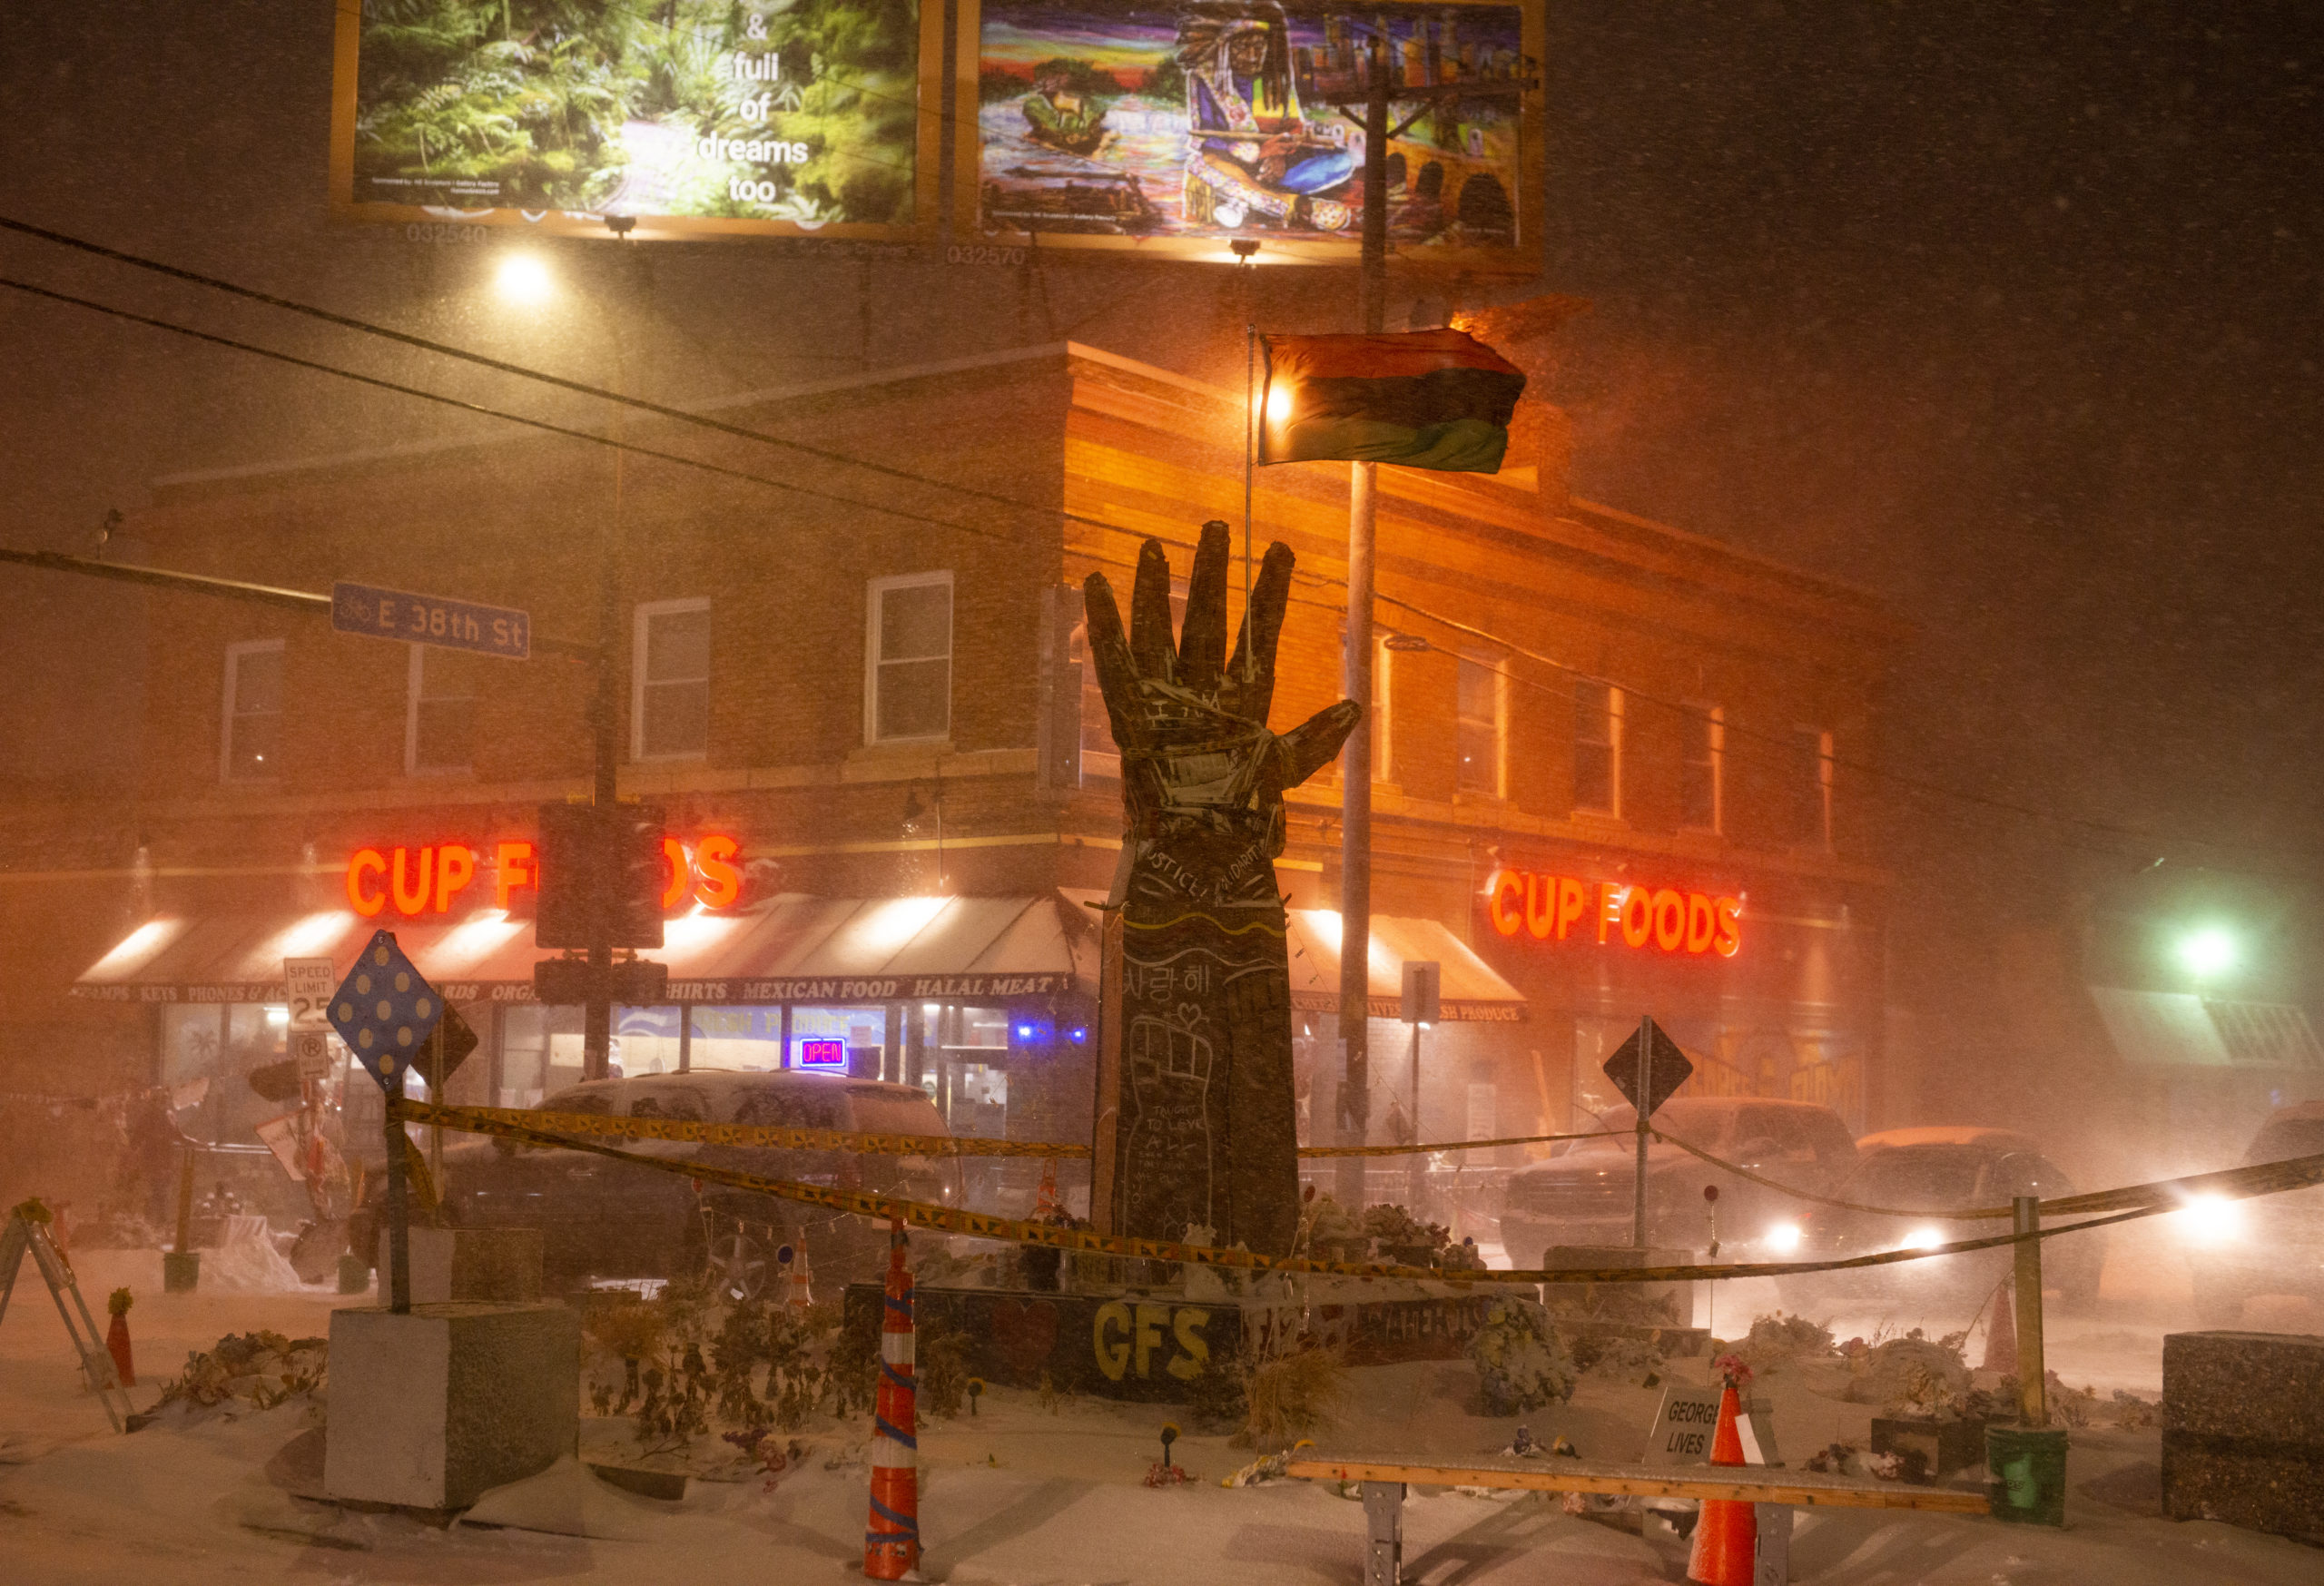 Heavy snow flies during a snowstorm at George Floyd Square, the memorial site for George Floyd, on December 23, 2020 in Minneapolis, Minnesota. (Stephen Maturen/Getty Images)